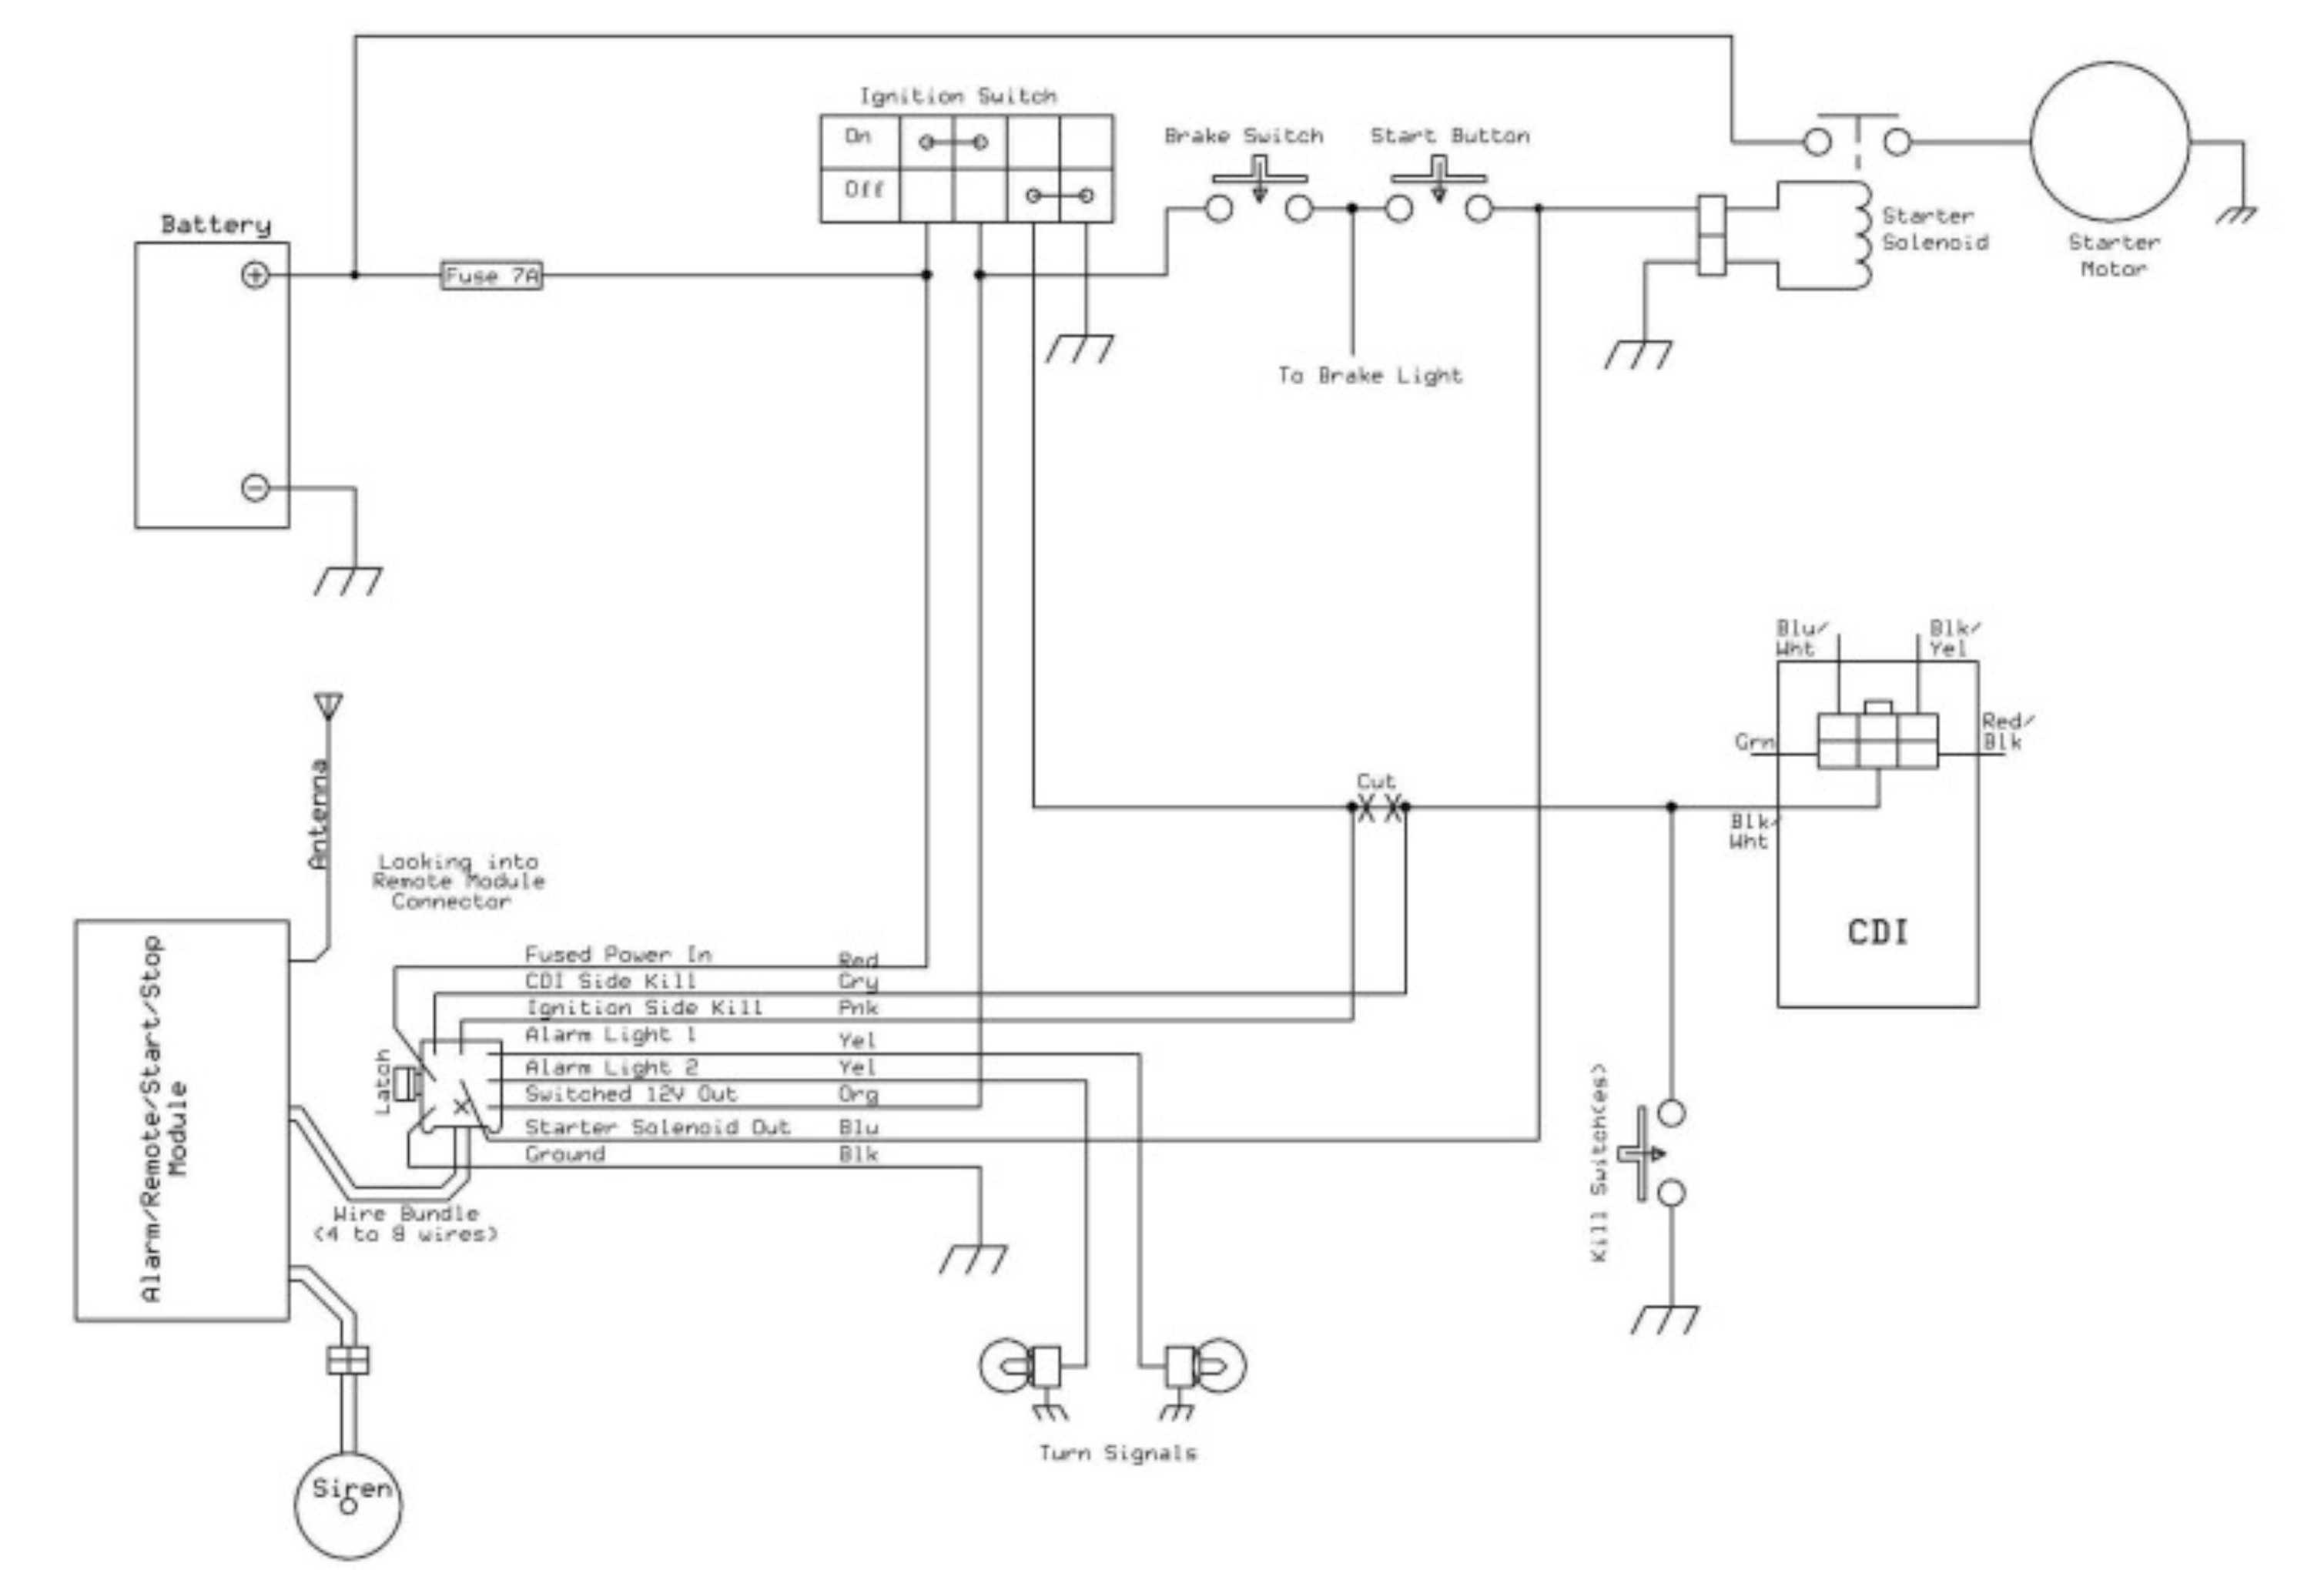 DIAGRAM] Tao Tao 50cc Moped Wiring Diagram FULL Version HD Quality Wiring  Diagram - HEALTHYDIAGRAMS.RAPFRANCE.FRDatabase Design Tool